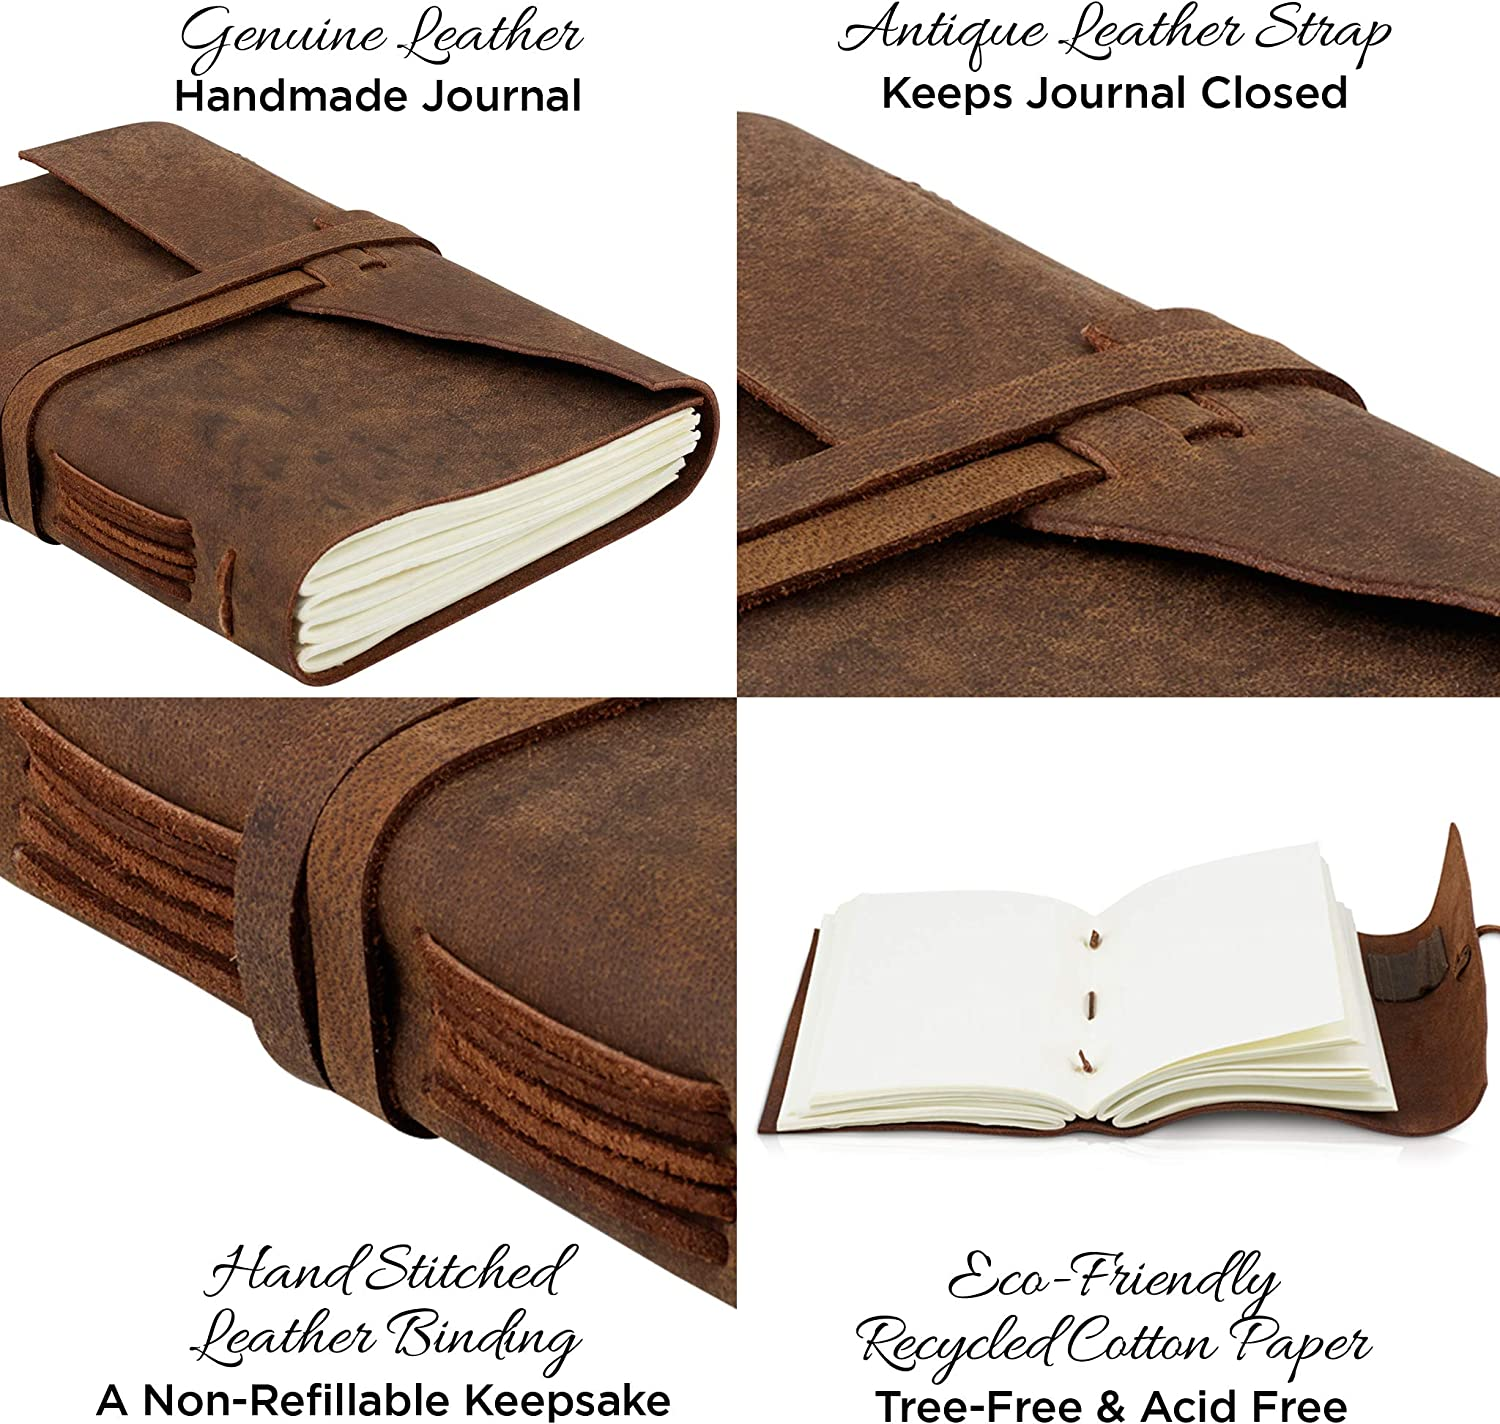 Travel Diary And Art Sketchbook Leather Bound Daily Unlined Notebook To Write In Handmade Leather Journal Notepad Best Gift For Men And Women With A Gift Box Included Cotton Paper 7x5 Inches